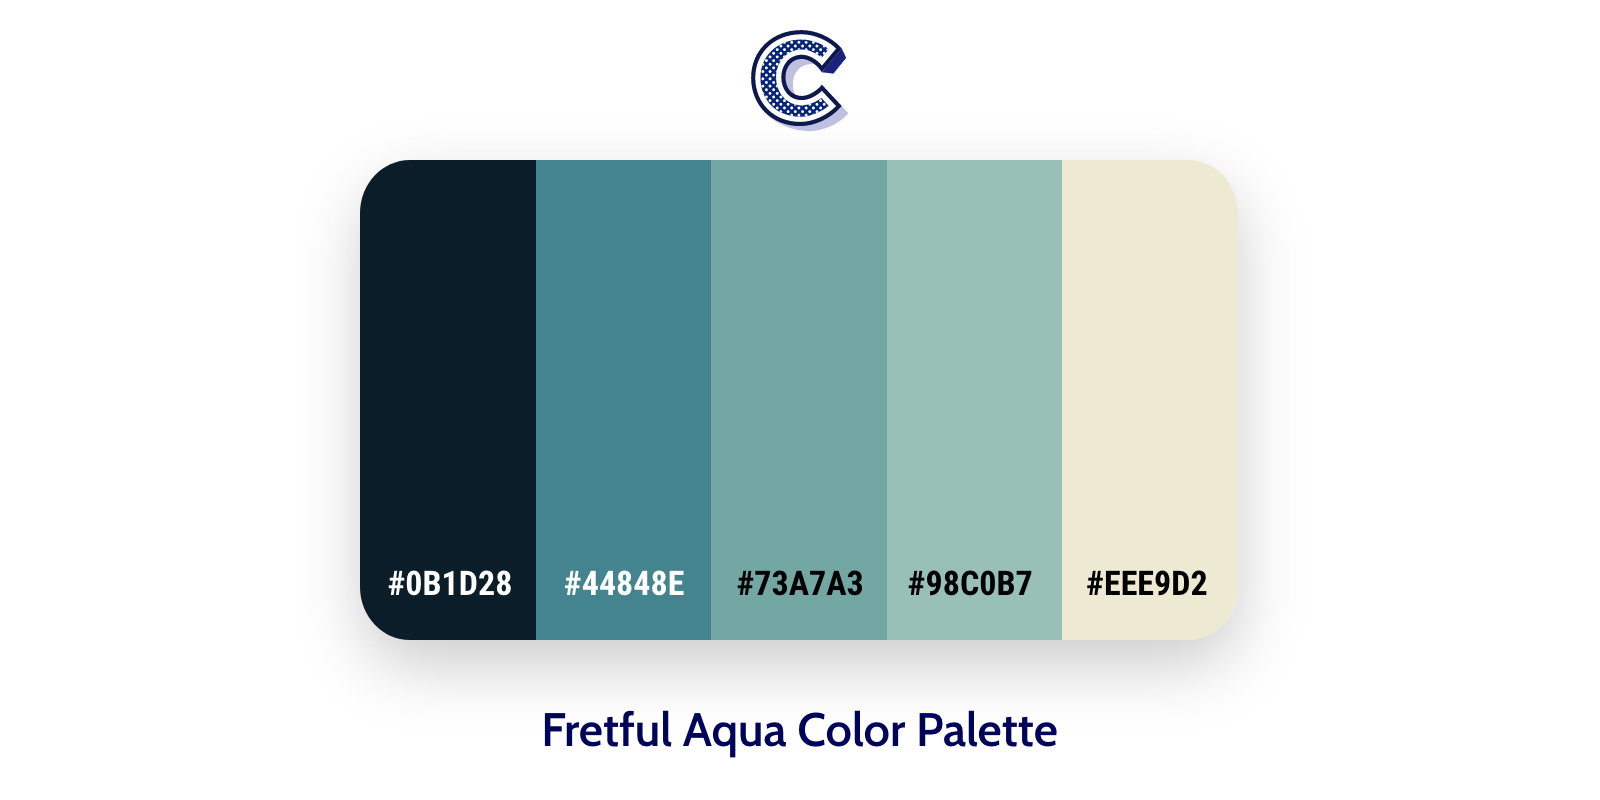 the featured image of Fretful Aqua color palette